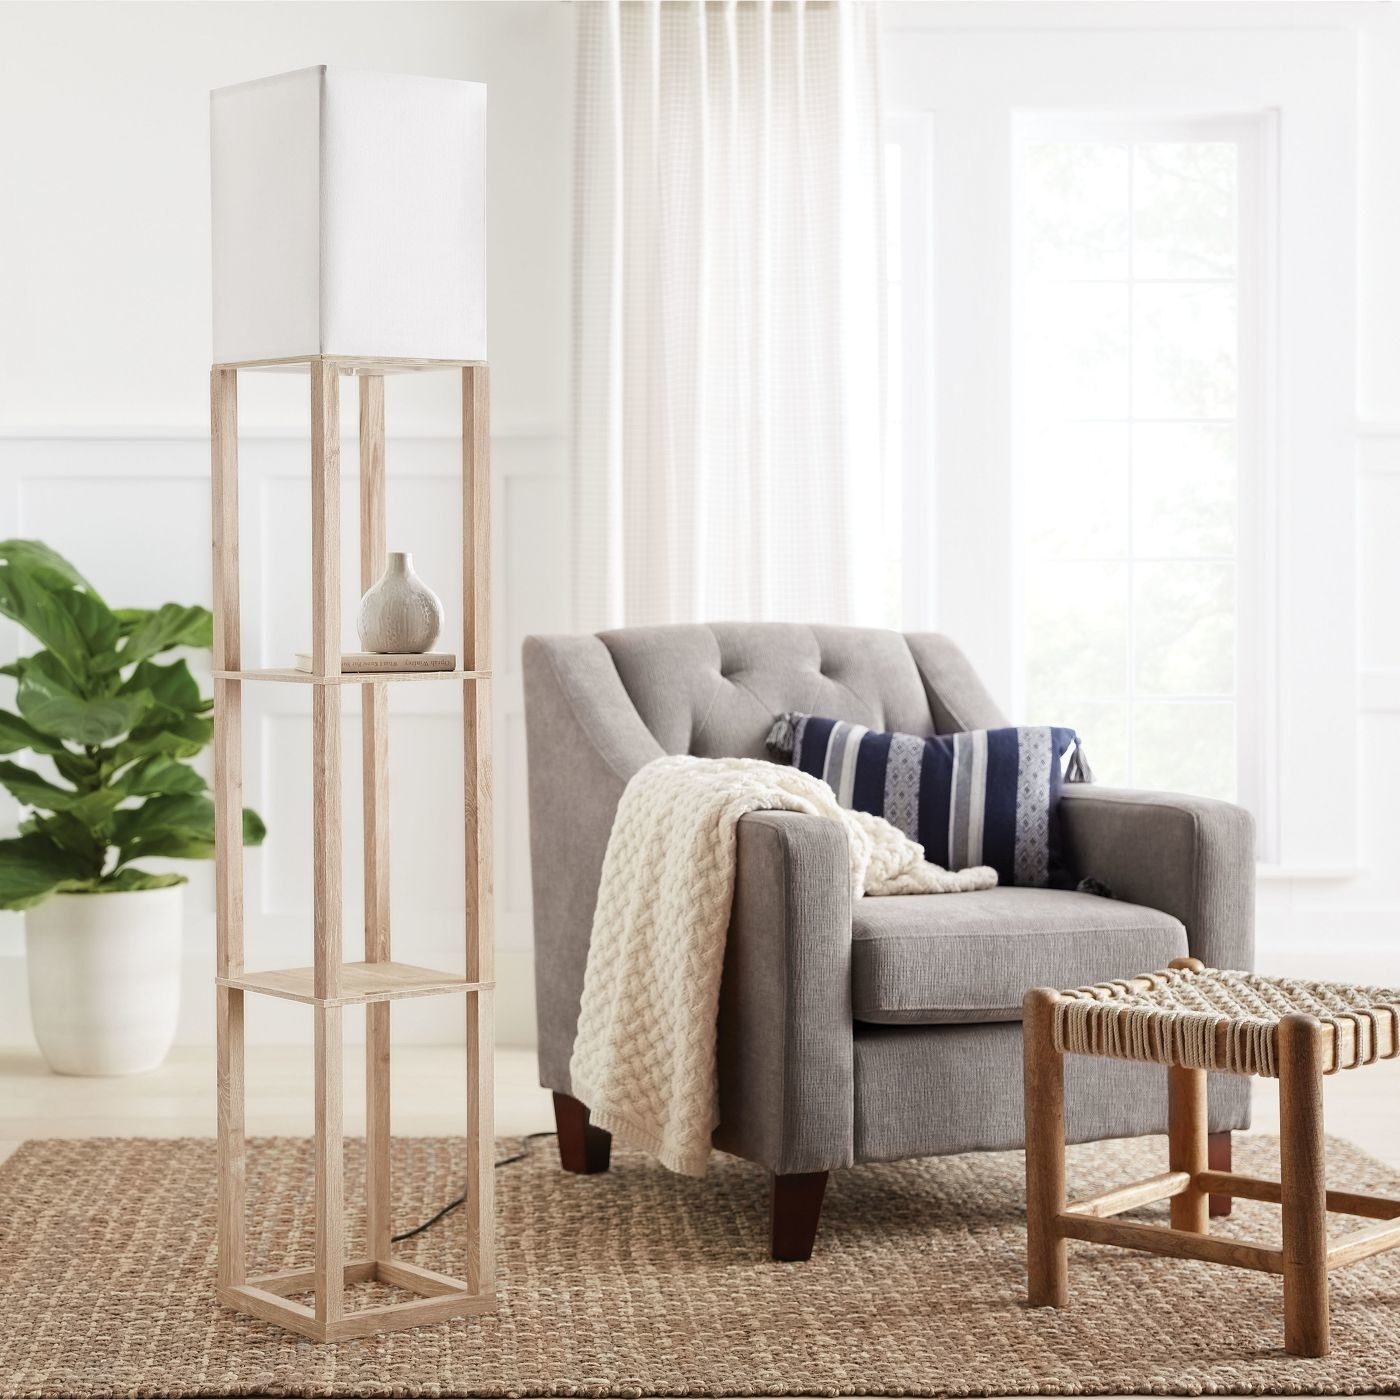 The square two-tier wood shelf with a light at the top